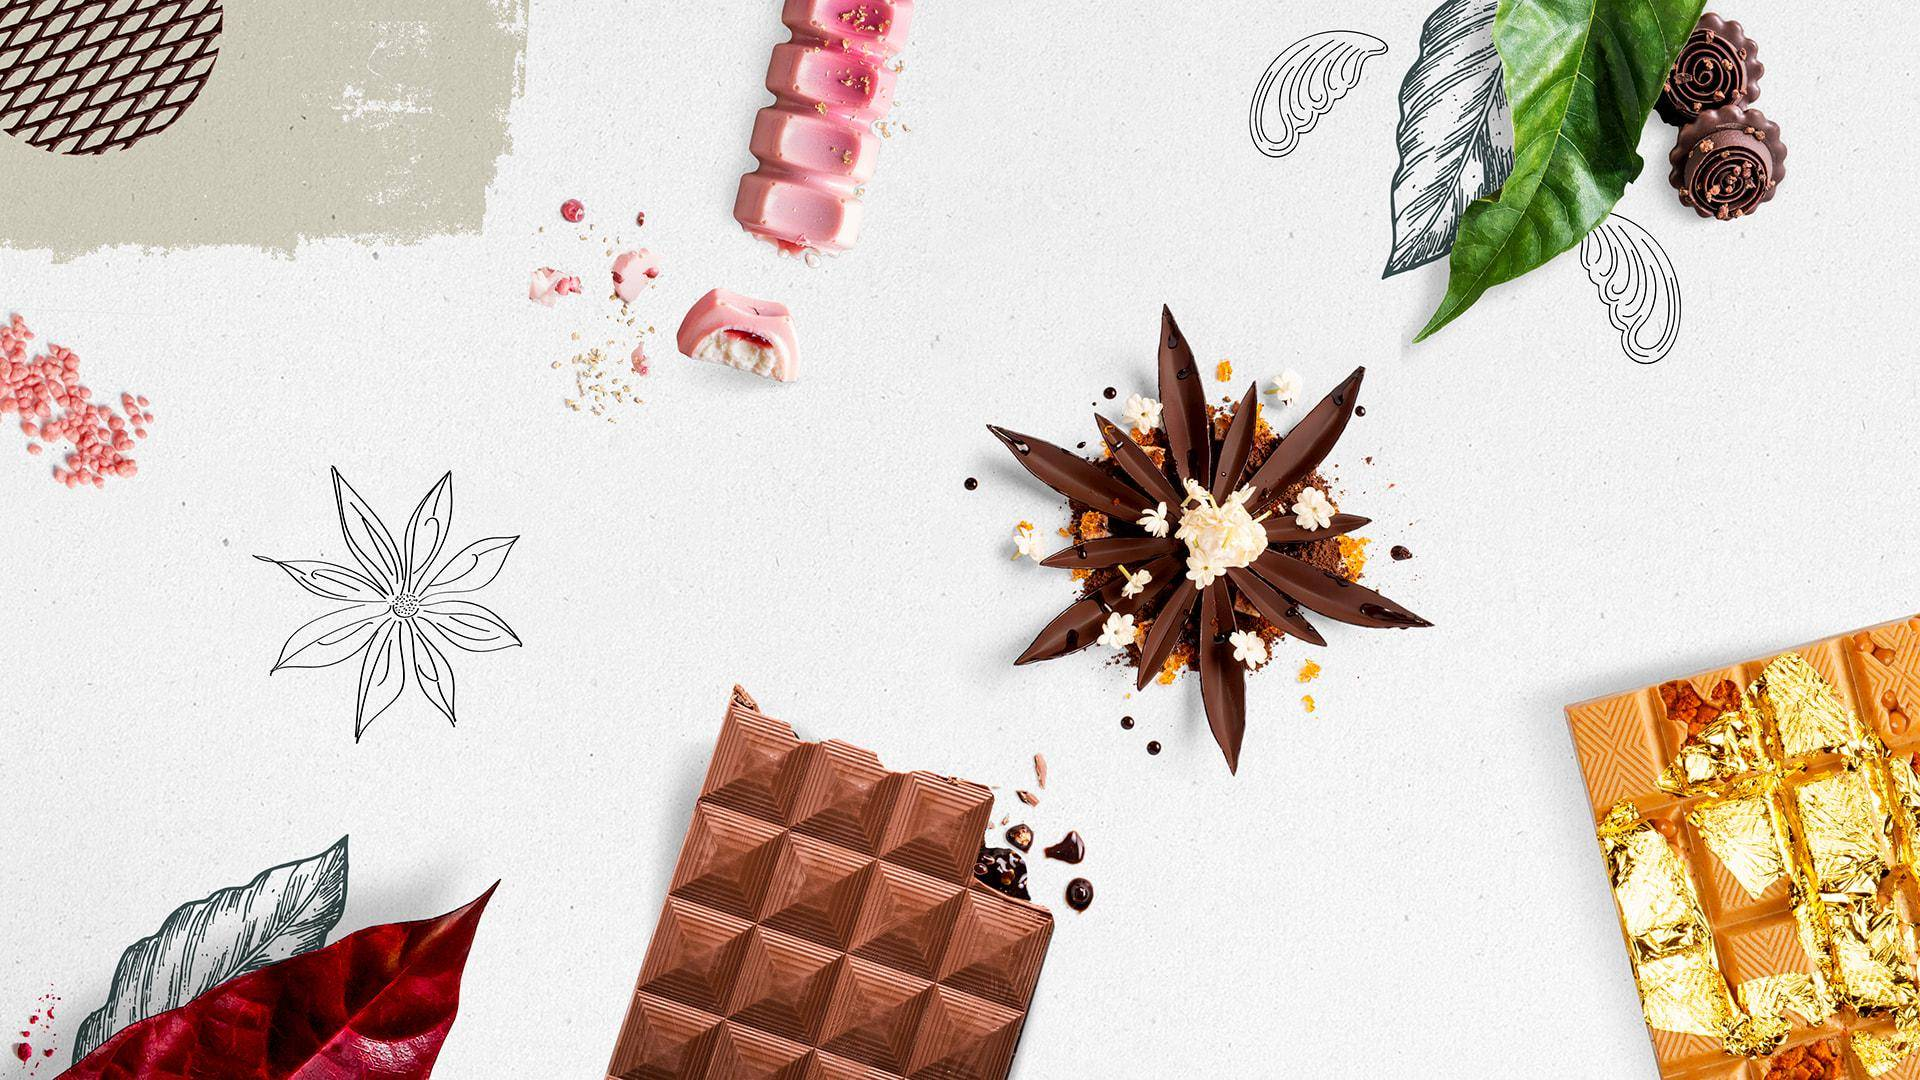 Barry Callebaut Annual Report 2019/20 downloads